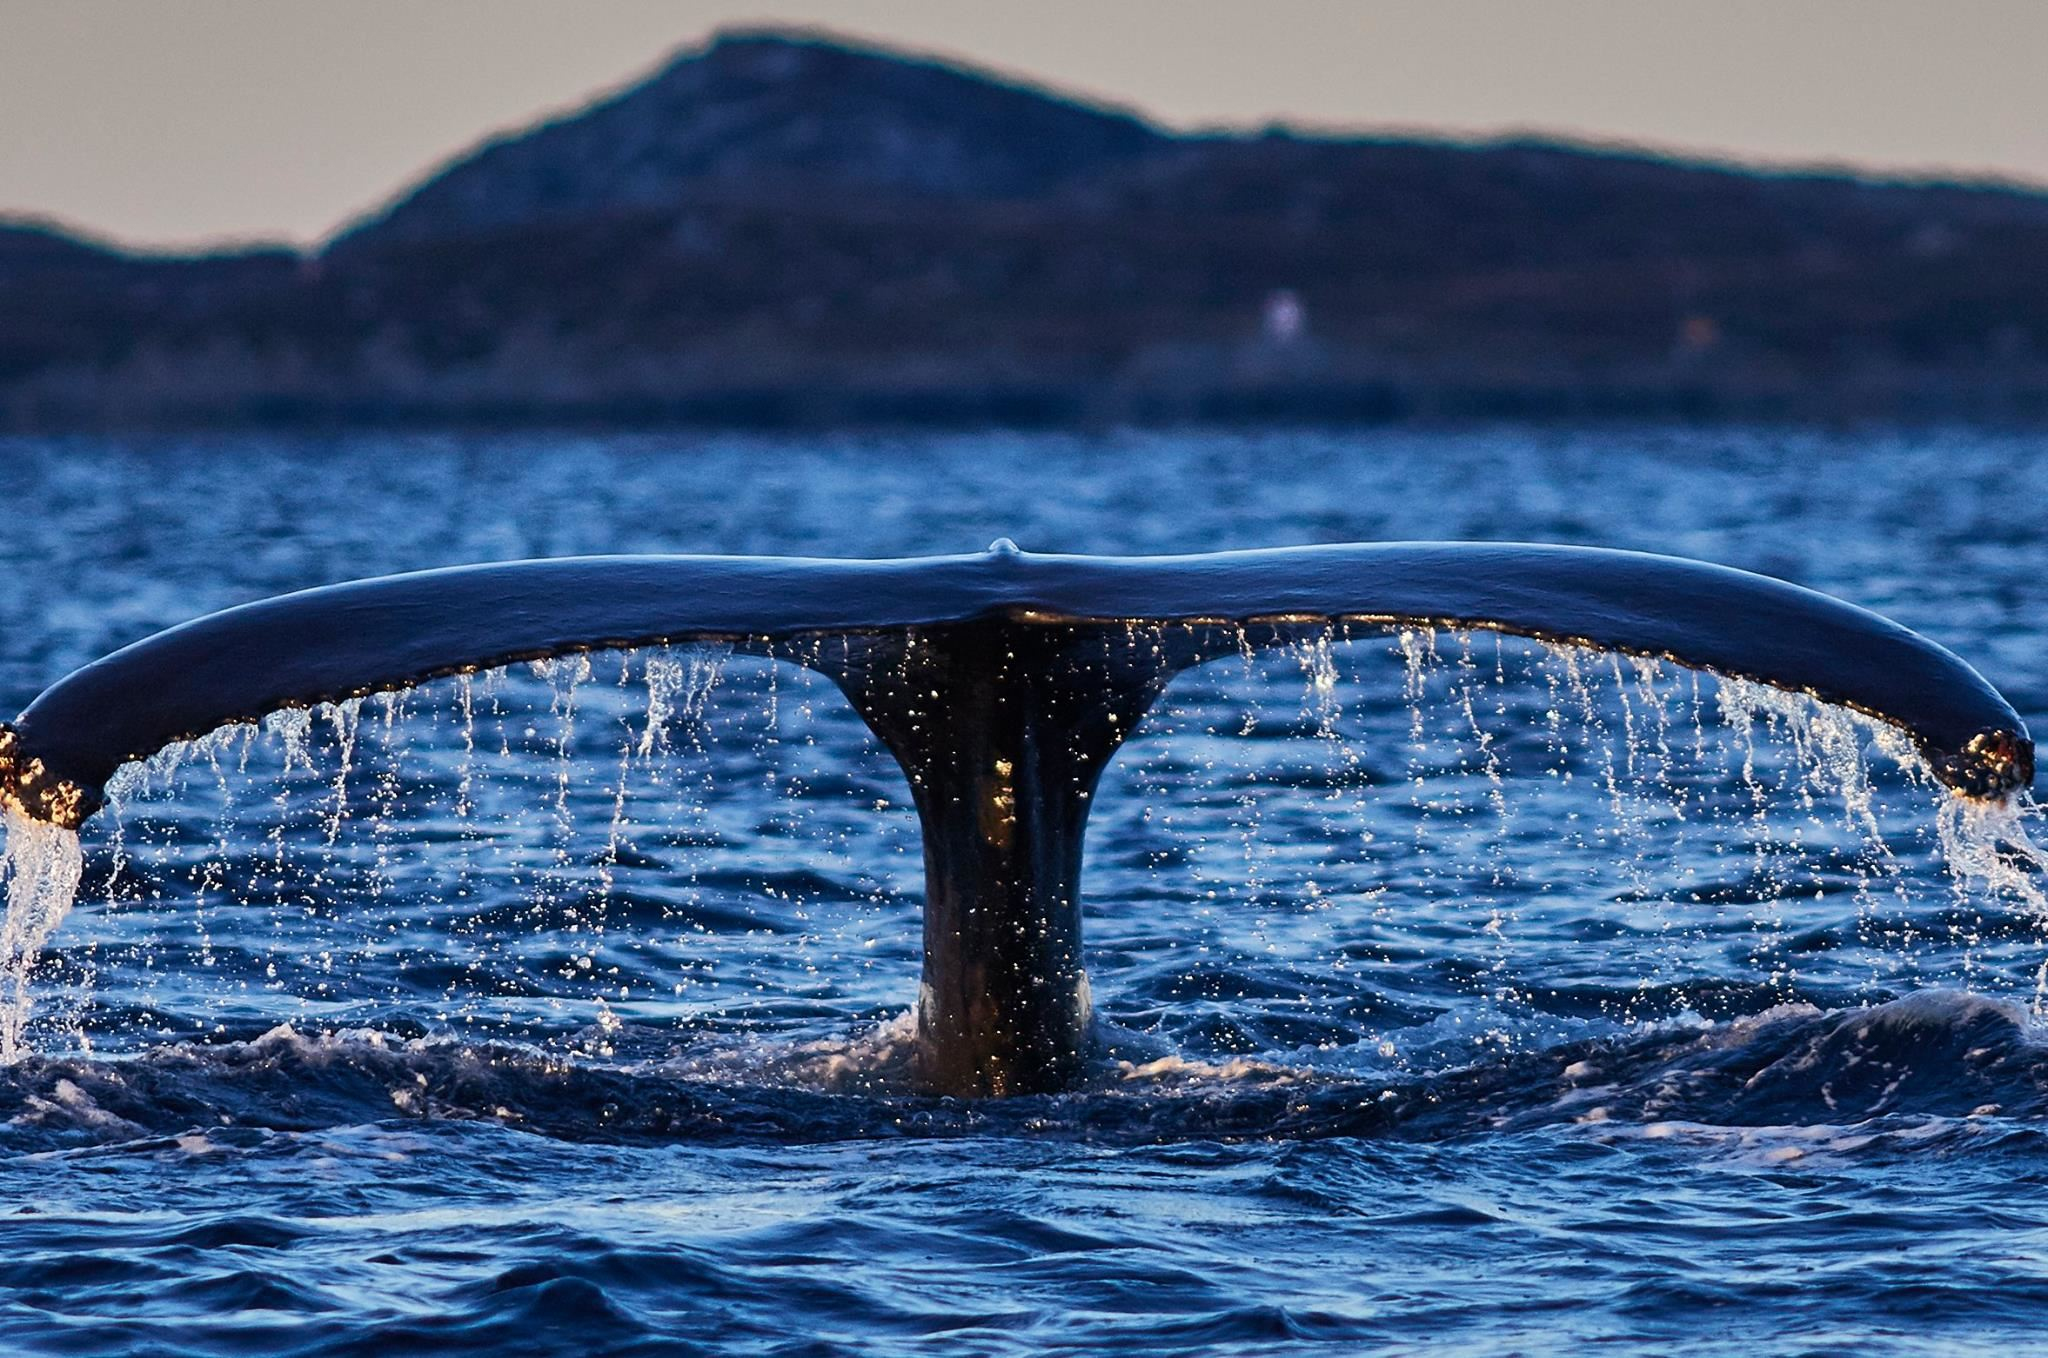 Scenic Whale Watching from our luxury Yacht Arctic Queen – Arctic Cruise in Norway